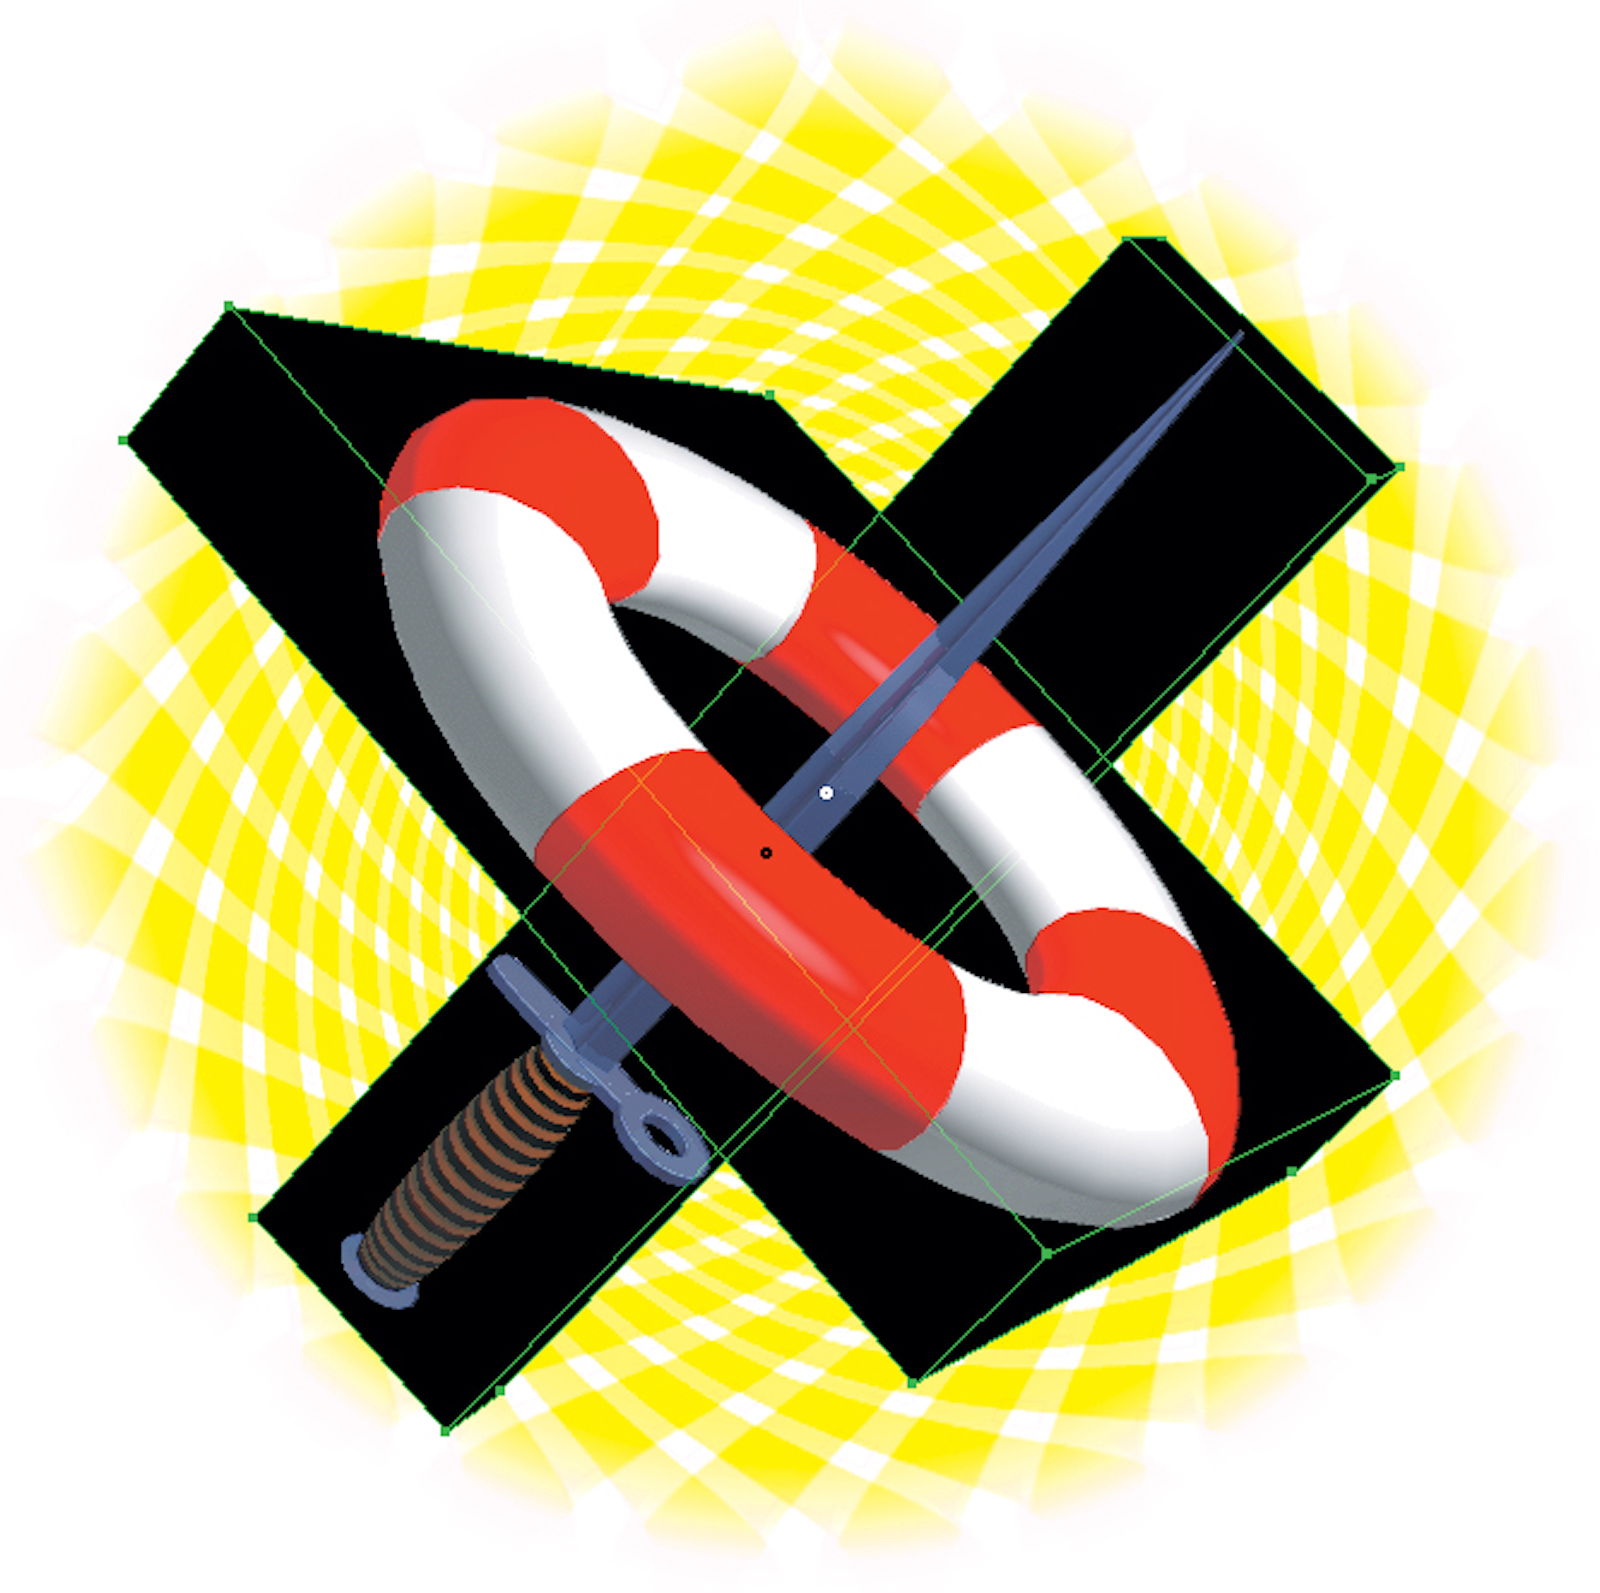 A red and white lifesaver with a sword through its center, both incased in two intersecting black rectangles.